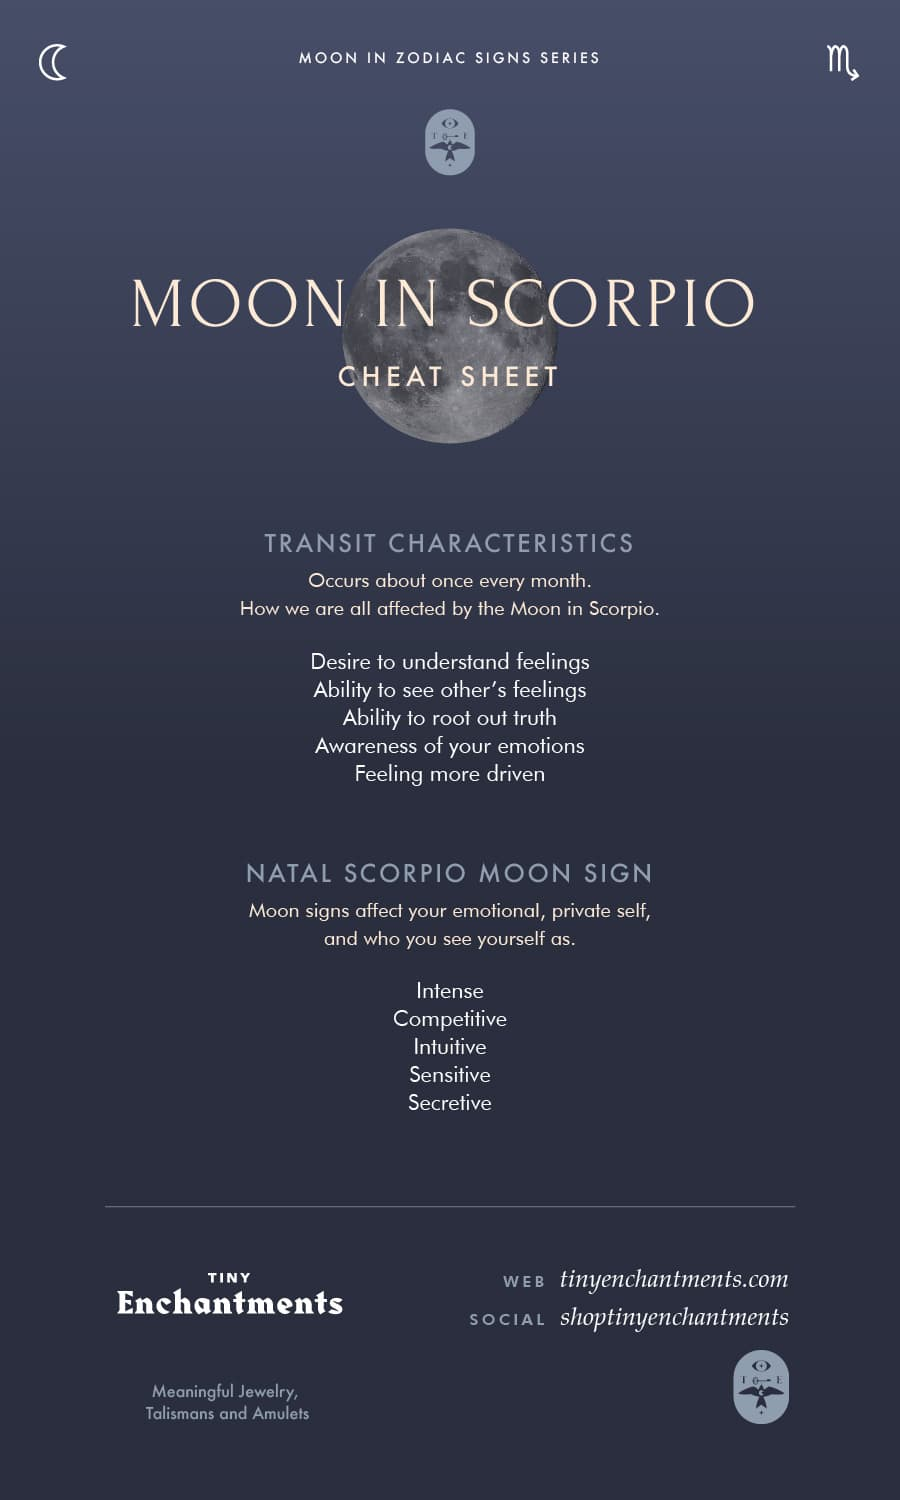 Scorpio Moon Sign and Moon in Scorpio Transit Meanings Infographic